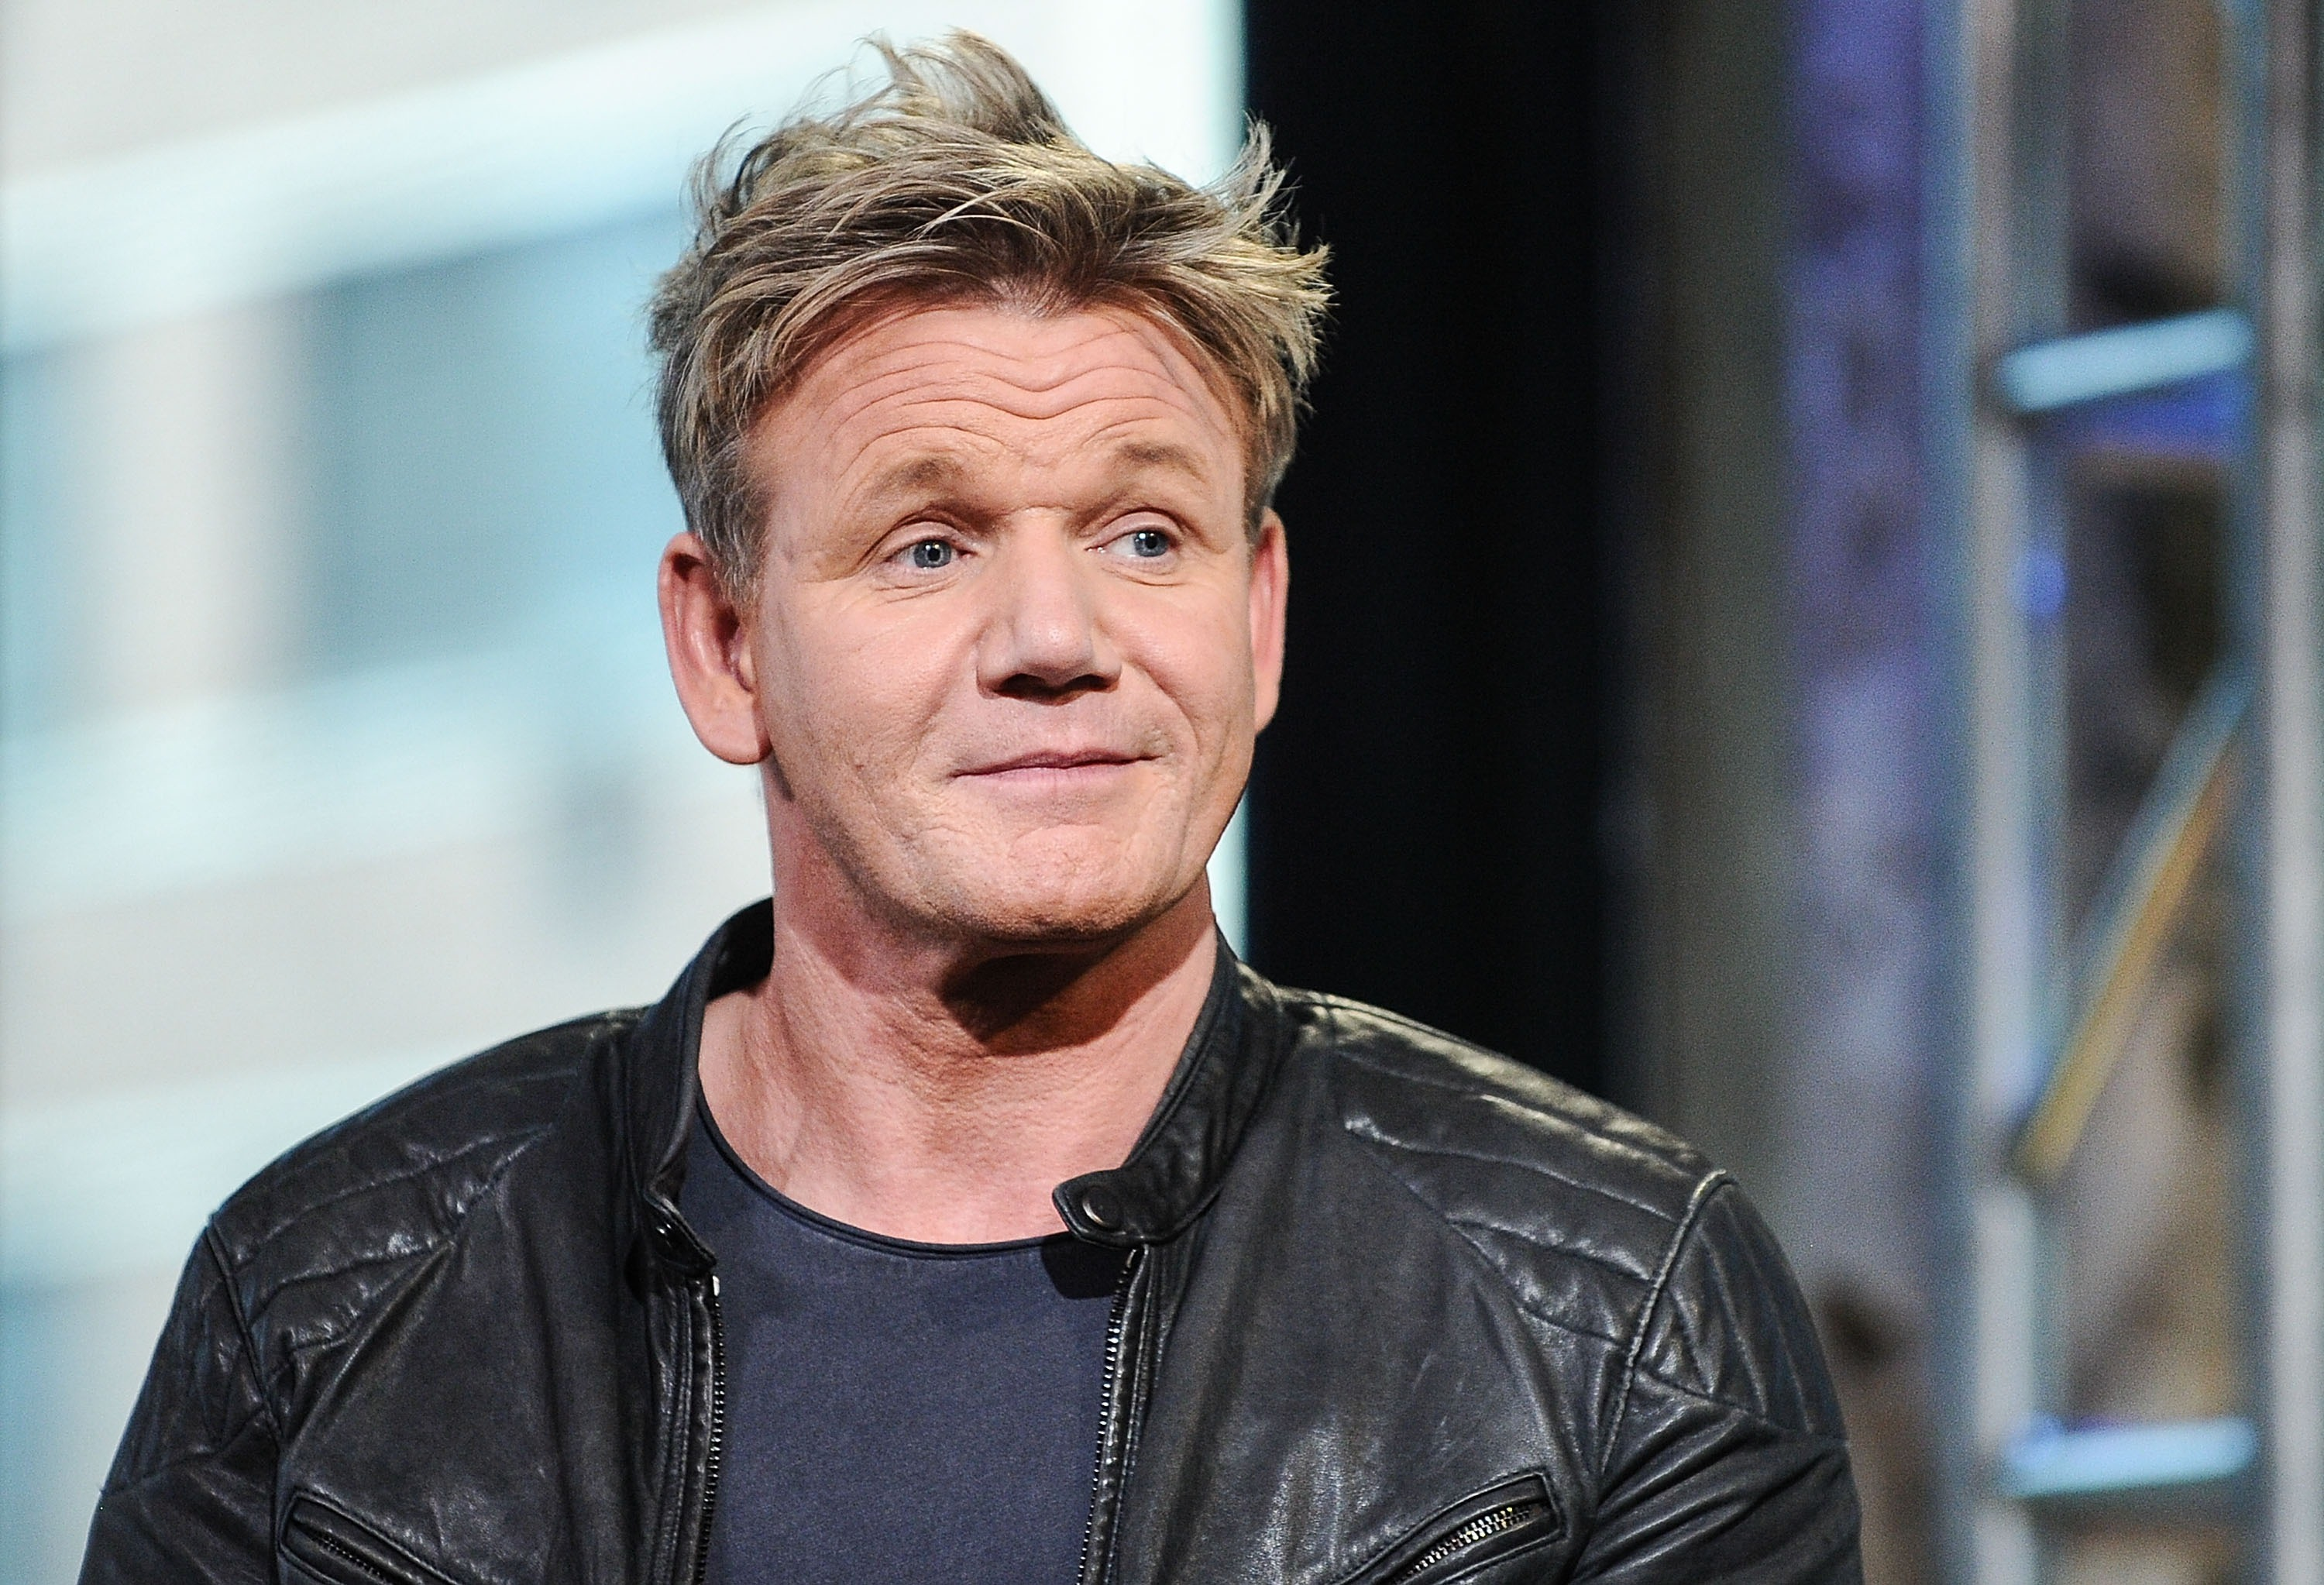 NEW YORK, NY - JUNE 22:  Chef Gordon Ramsay attends AOL Build to discuss his MasterChef Mobile Game at AOL Studios on June 22, 2016 in New York City.